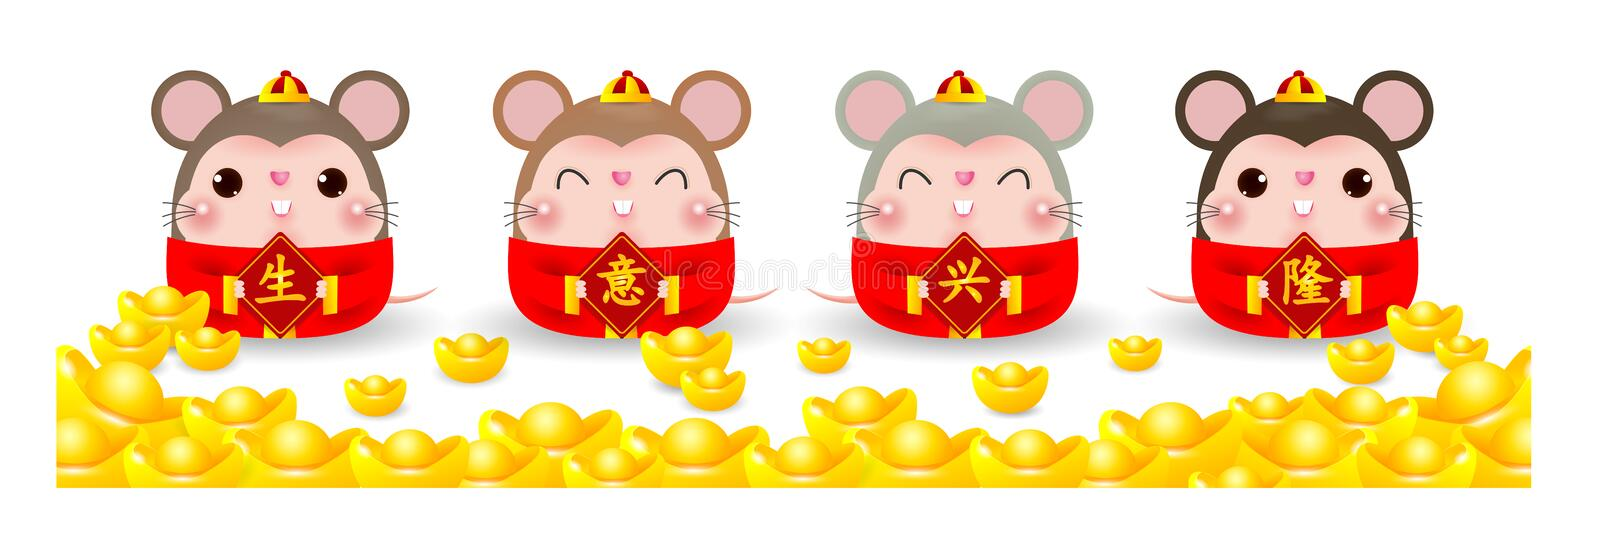 Four little rats holding a signs with Chinese gold, Happy new year 2020 year of the rat zodiac. Cartoon vector illustration royalty free illustration